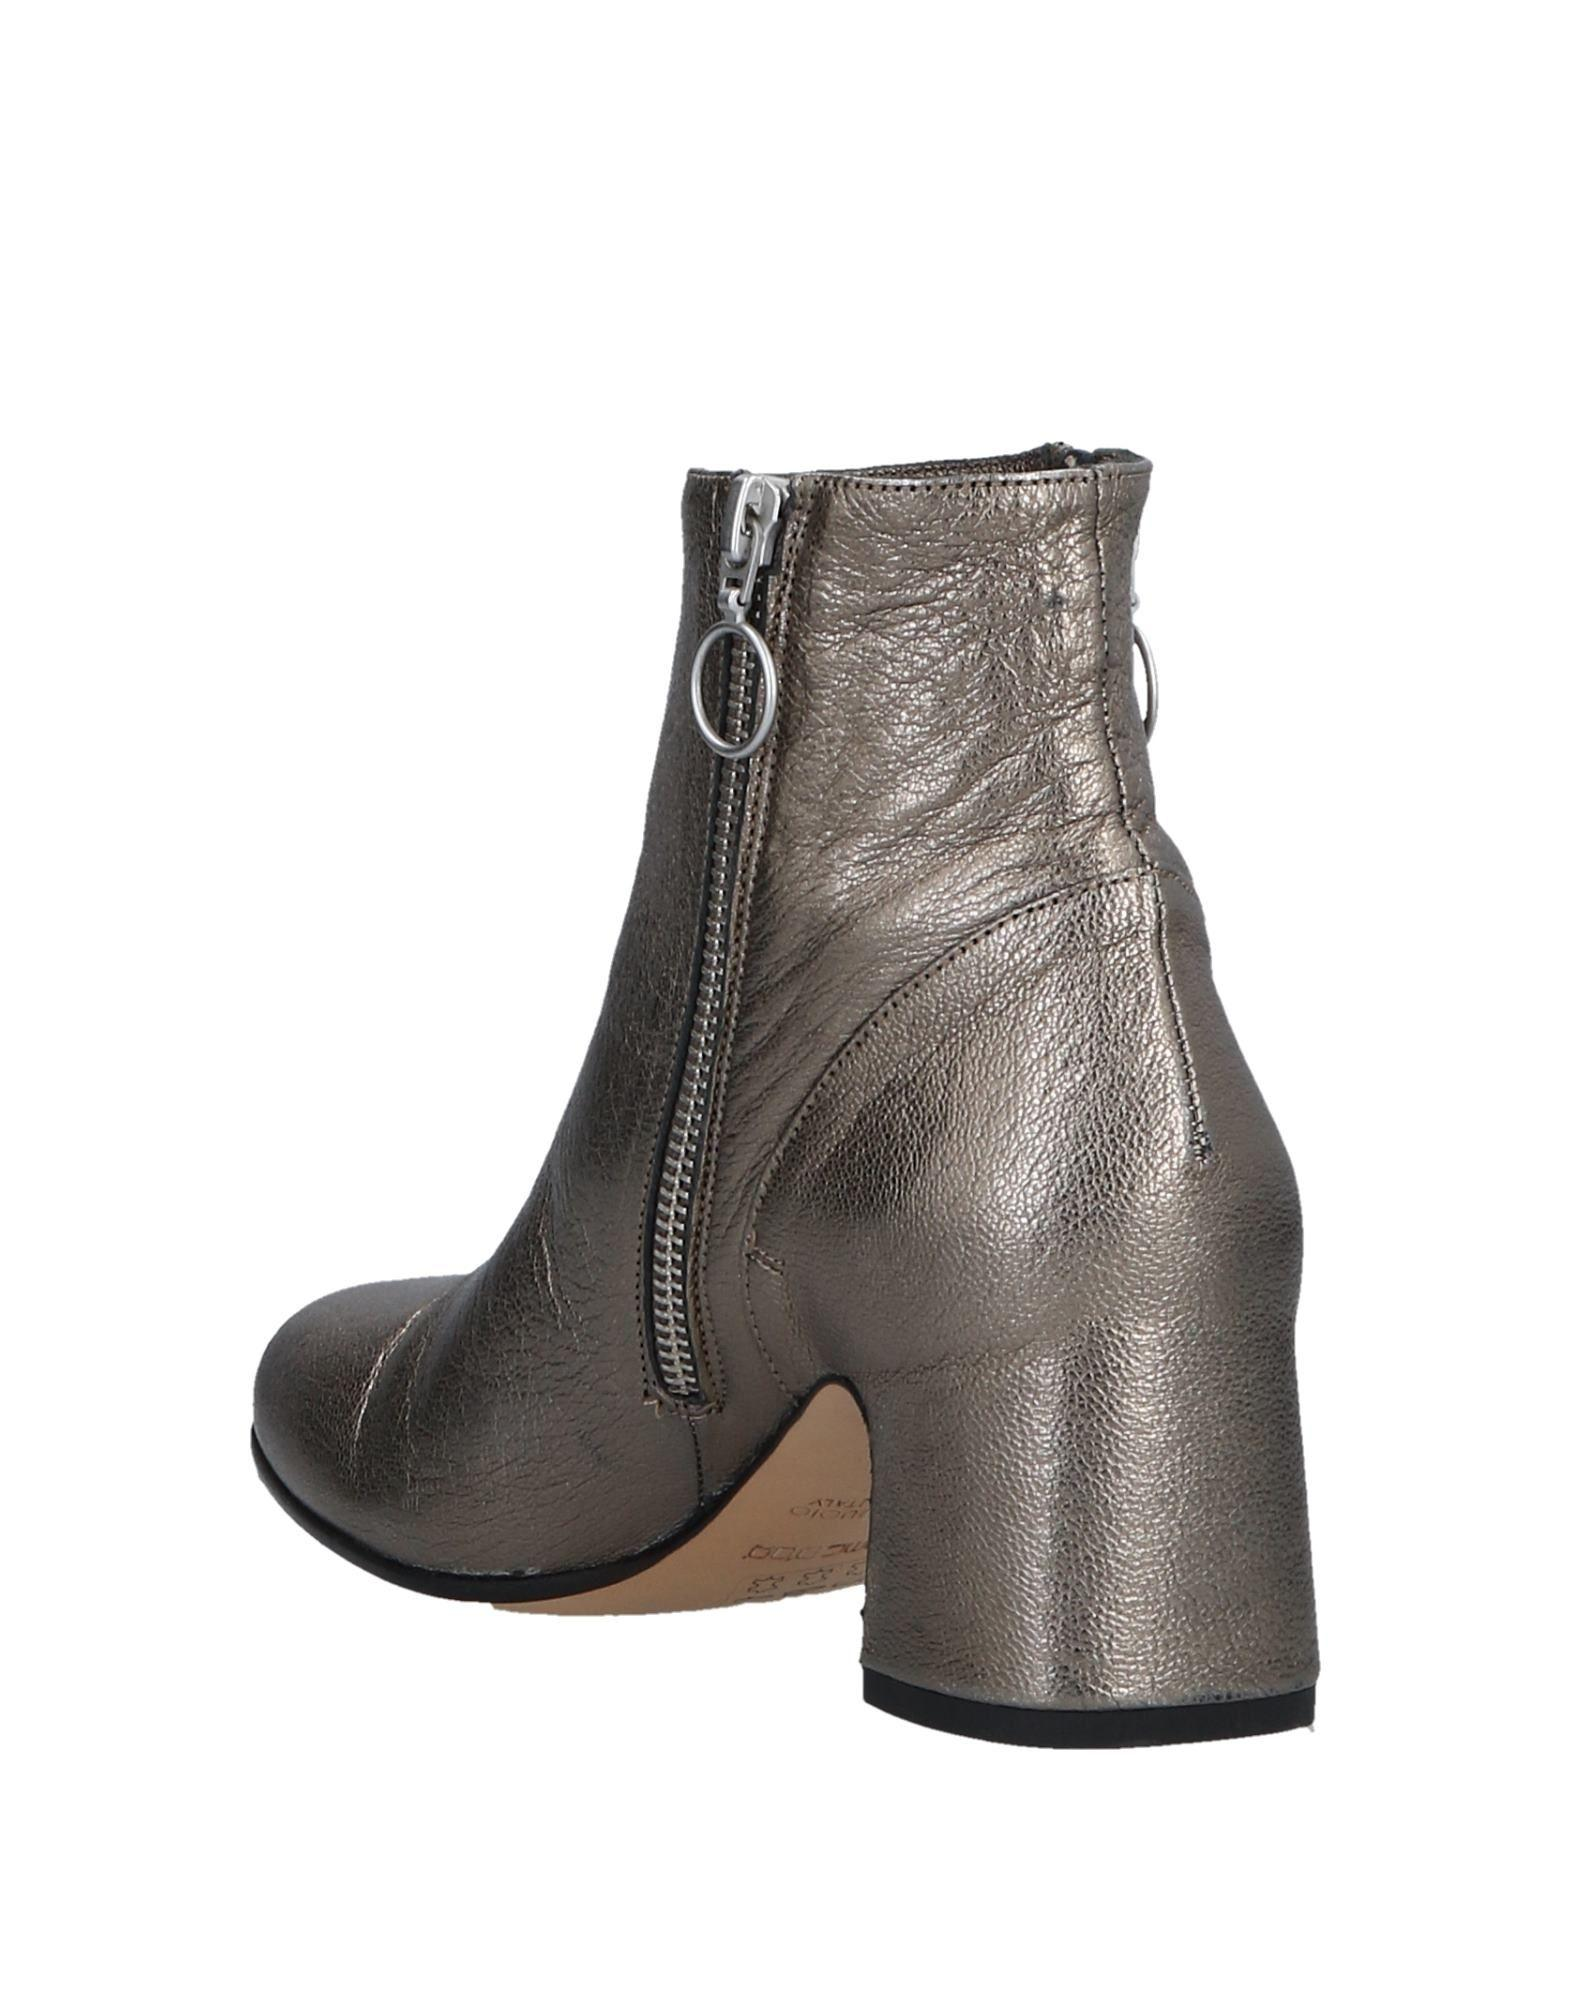 Pomme D'or Leather Ankle Boots